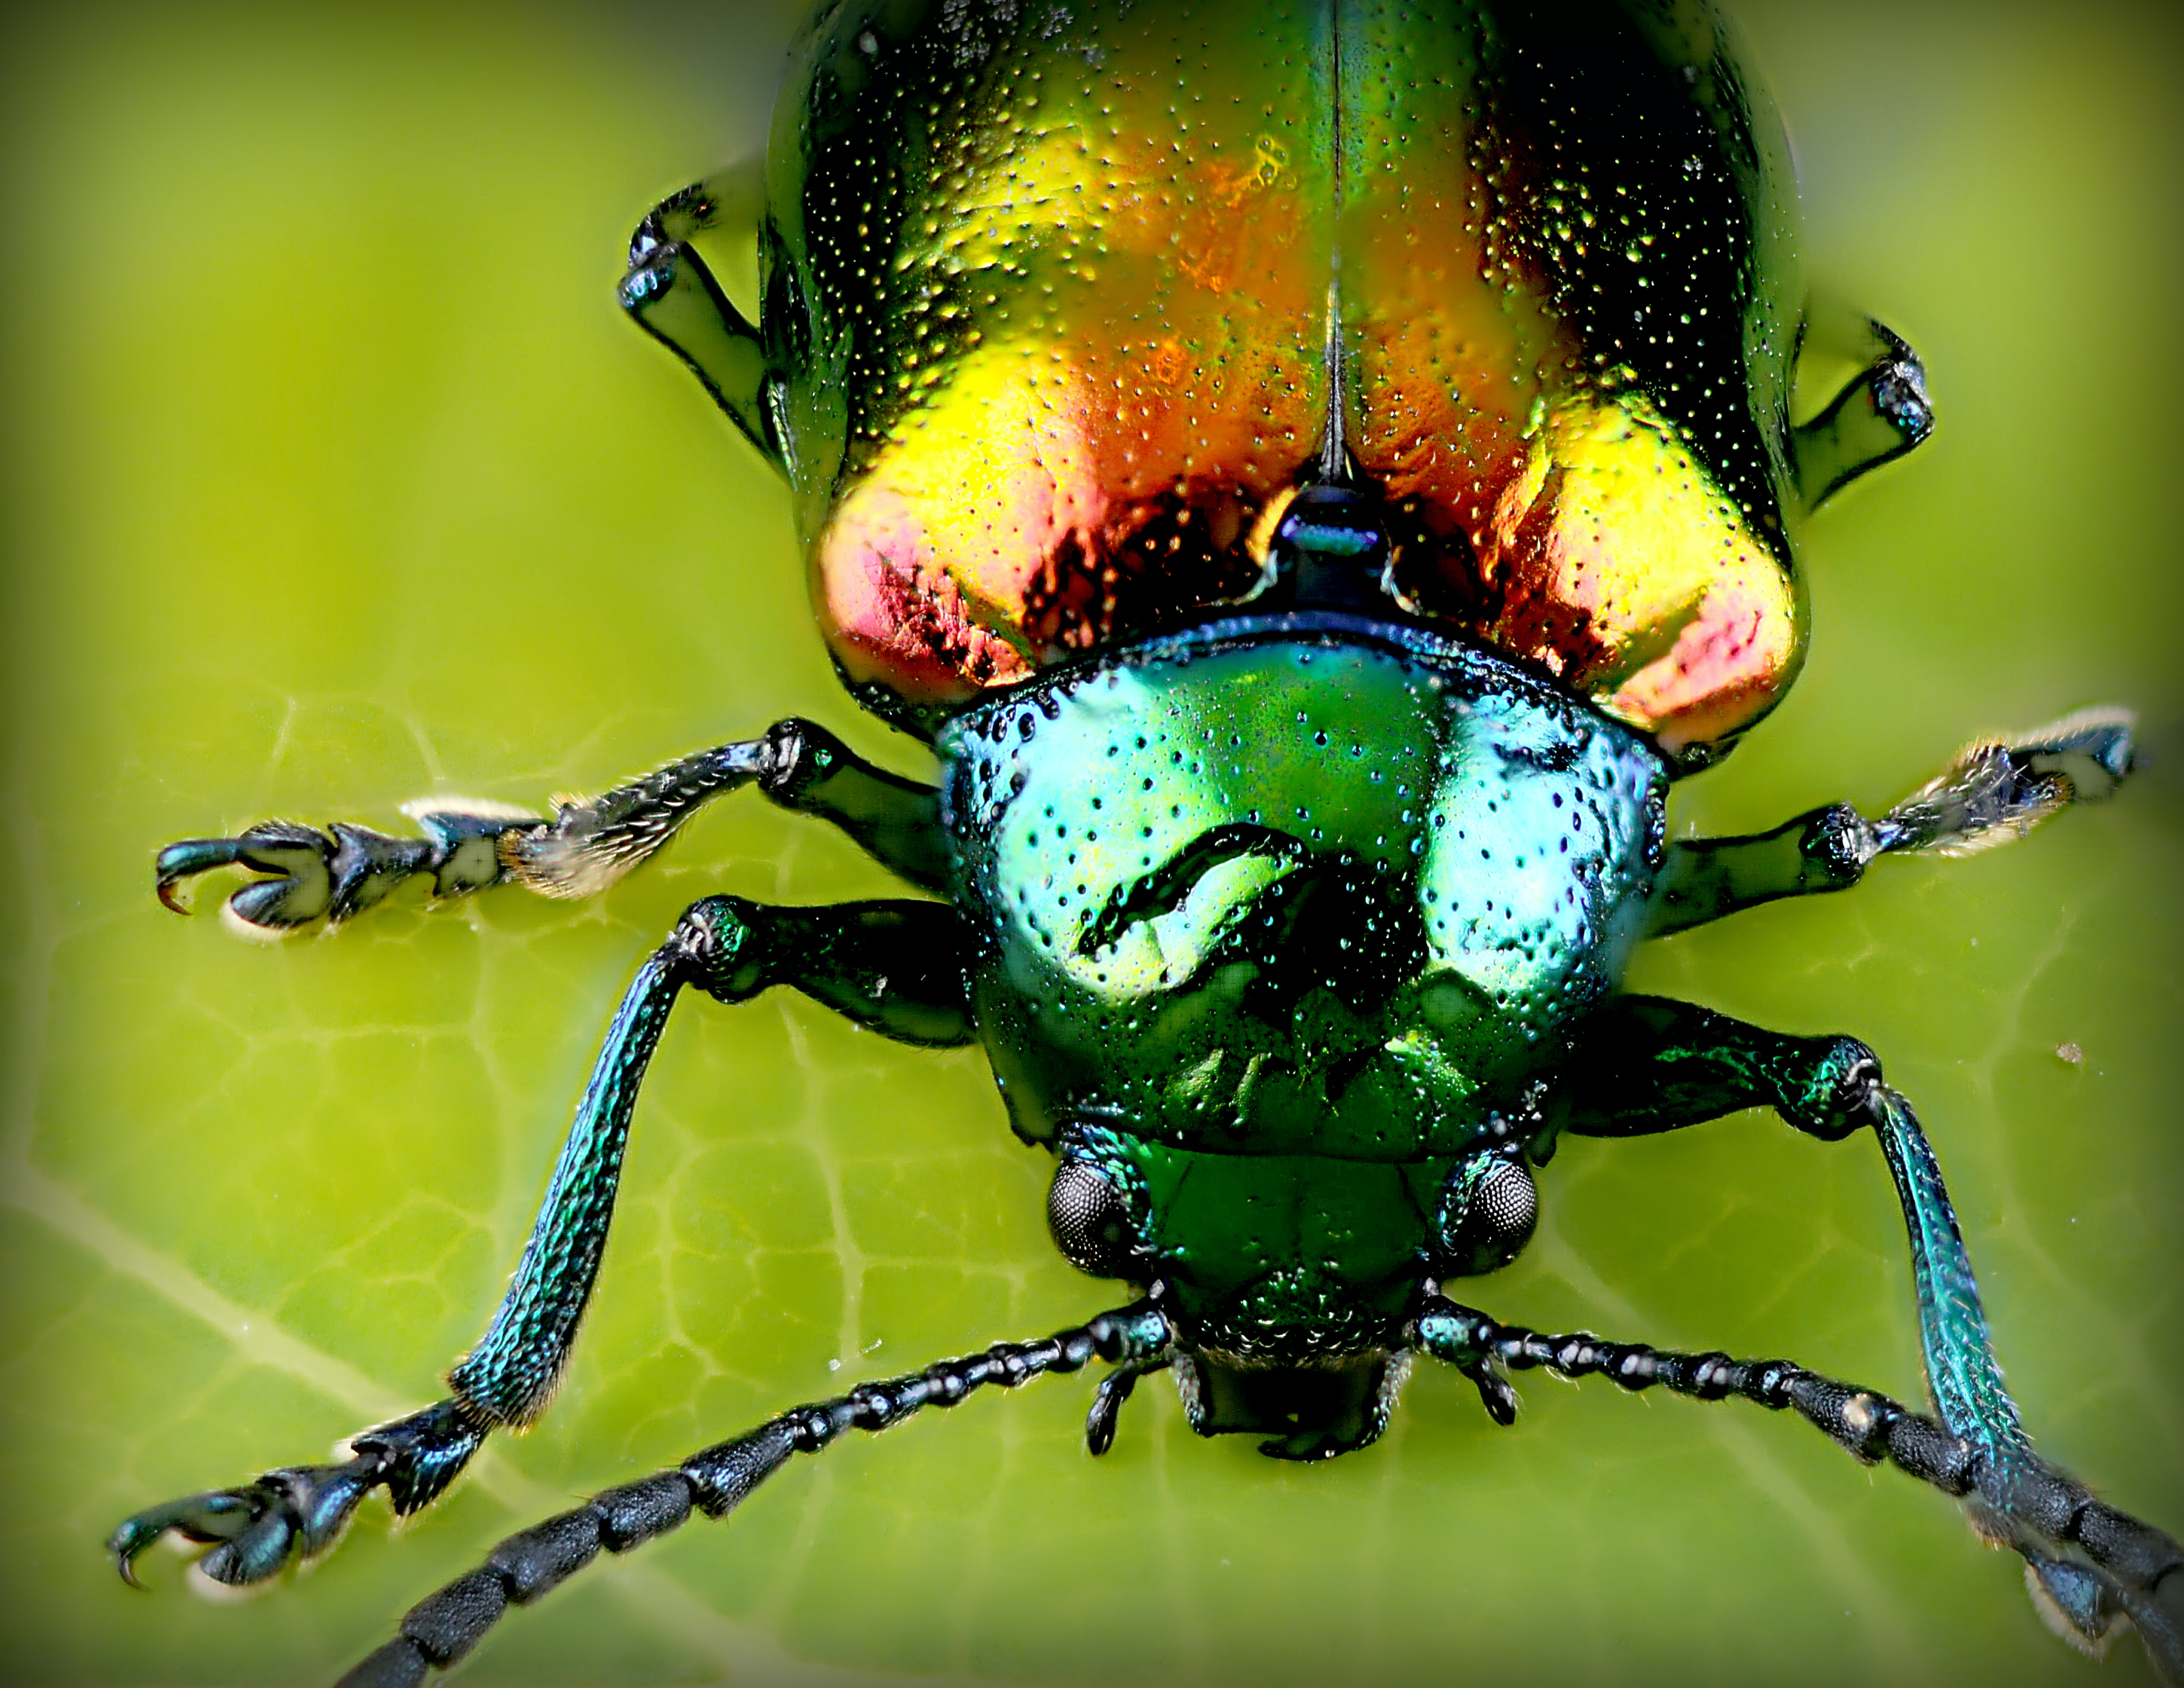 Macro of iridescent insect with glossy, shiny body and antenna on green leaf